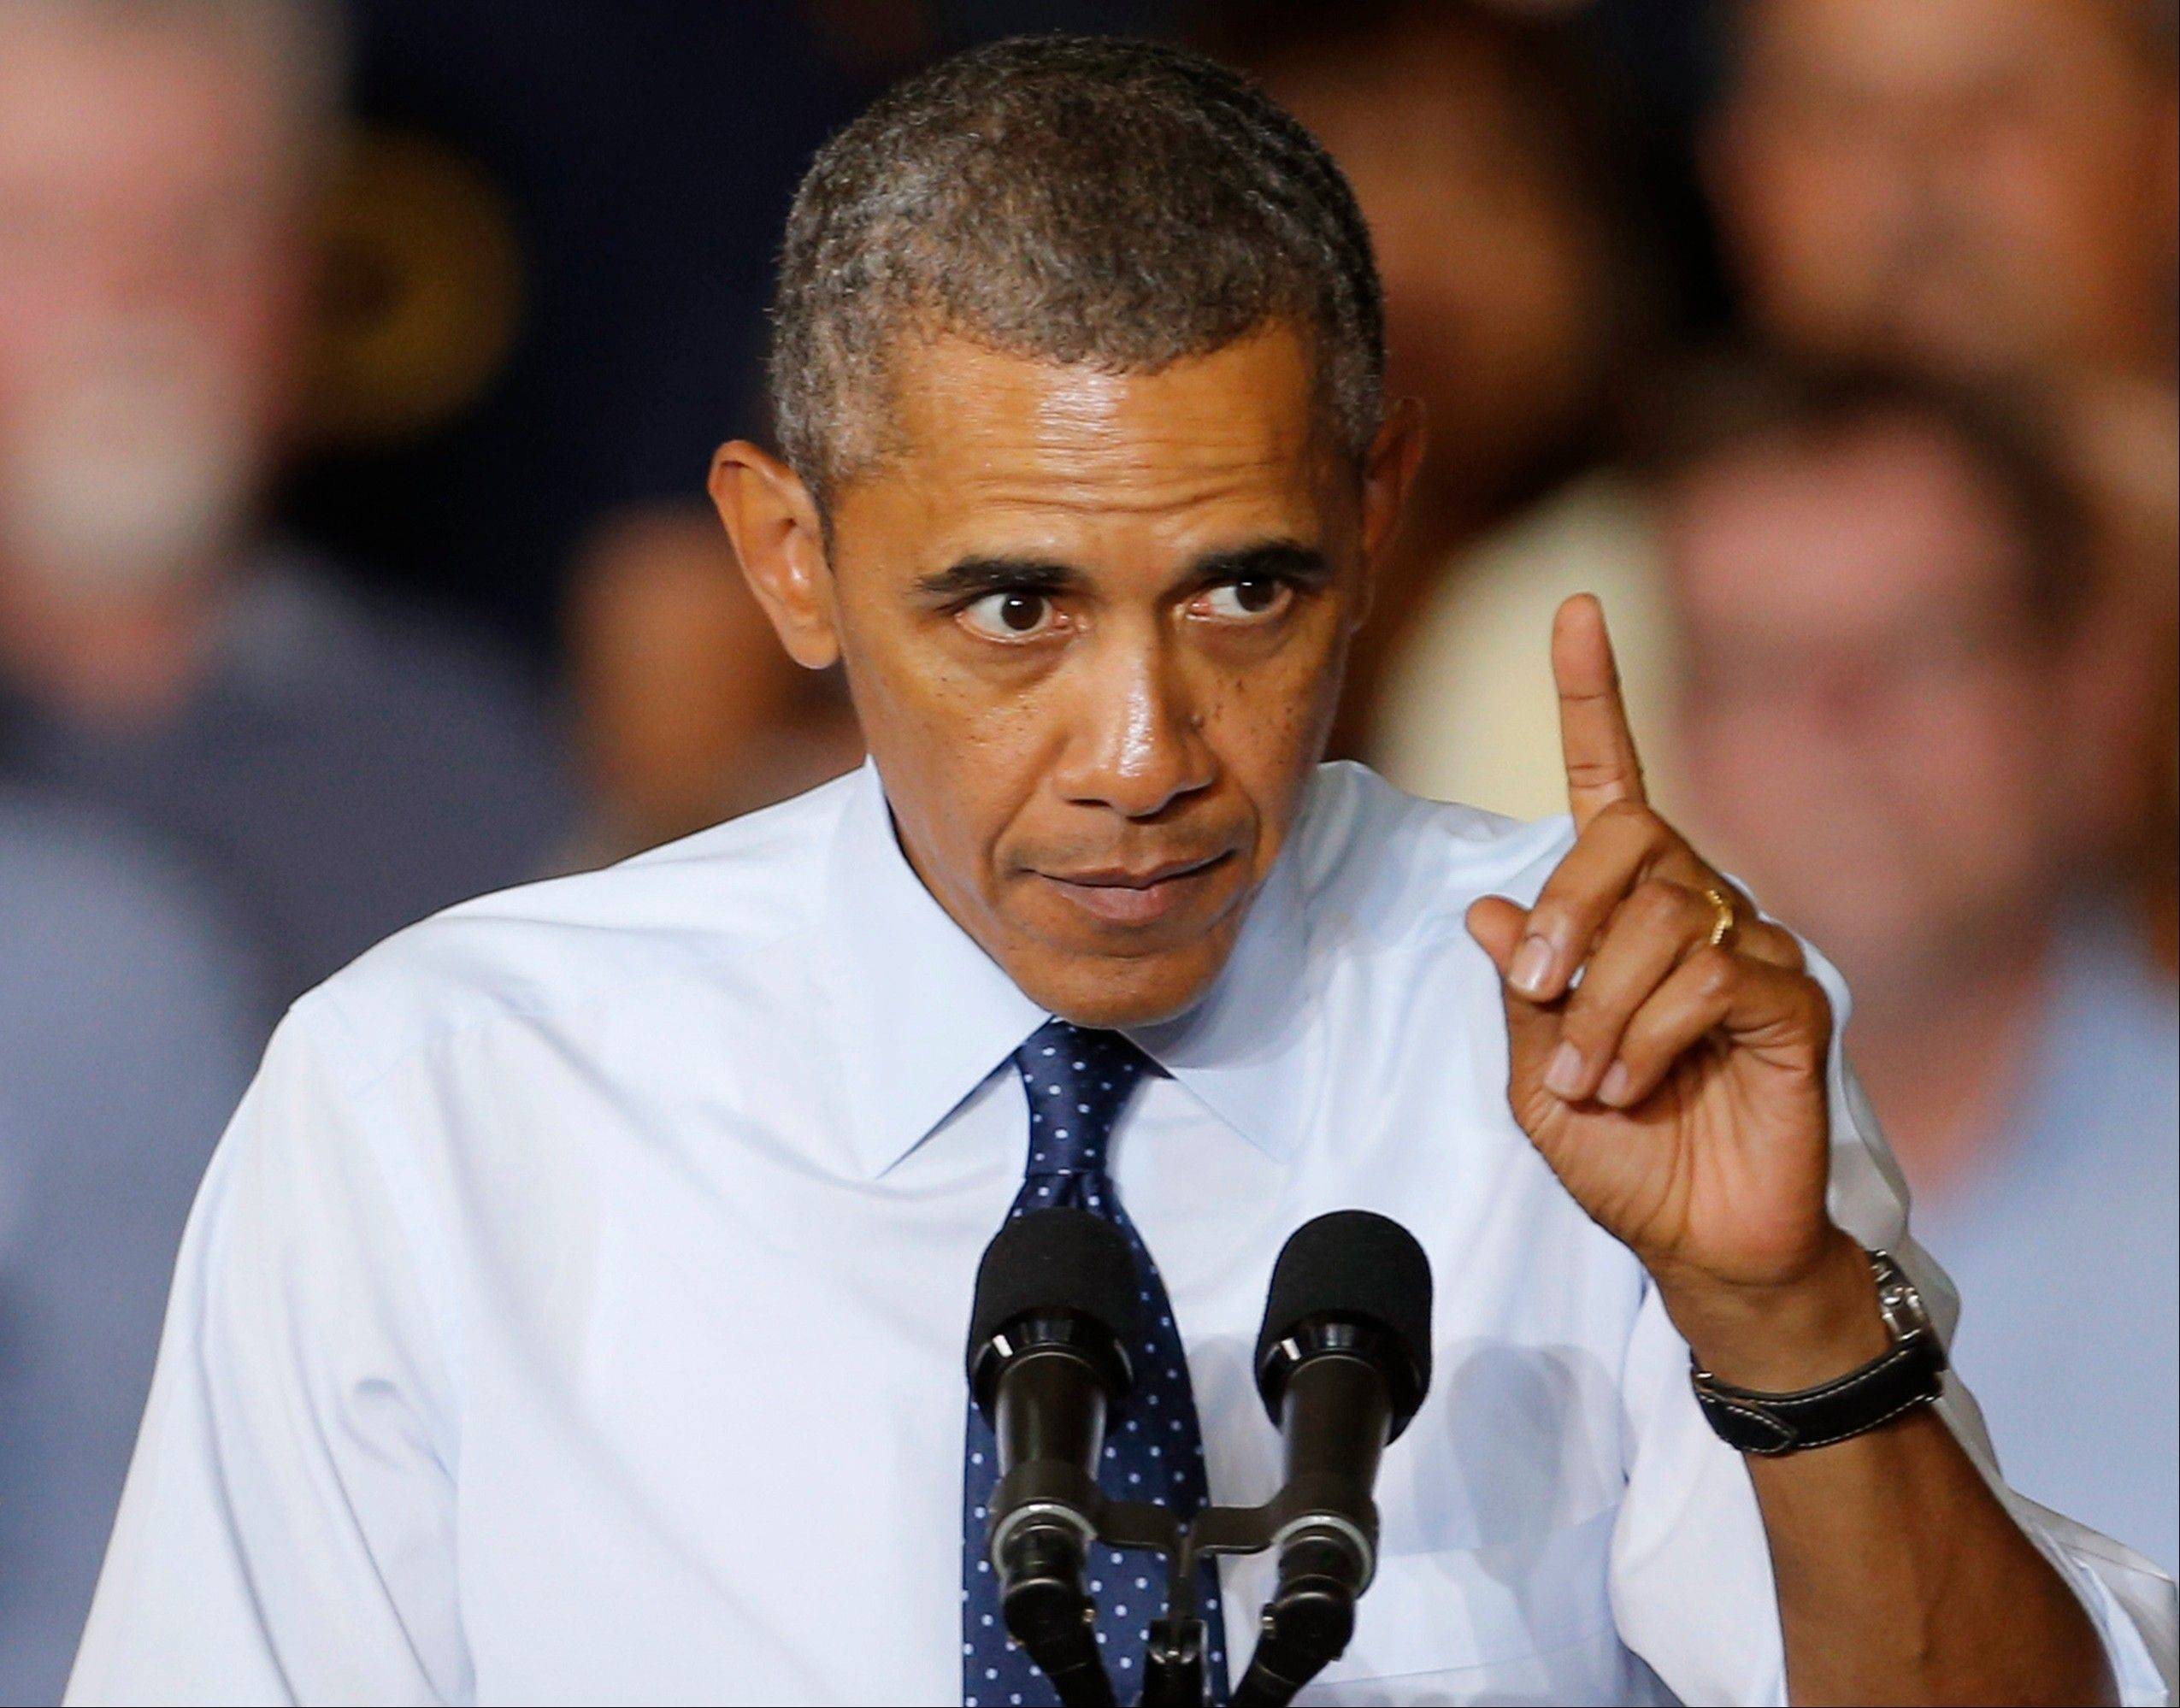 President Barack Obama is the insurance industry's most powerful pitchman these days as he drums up interest in the health insurance markets opening for business Tuesday. Whatever the merits of his product, there are reasons for the buyer to beware of his rhetoric.